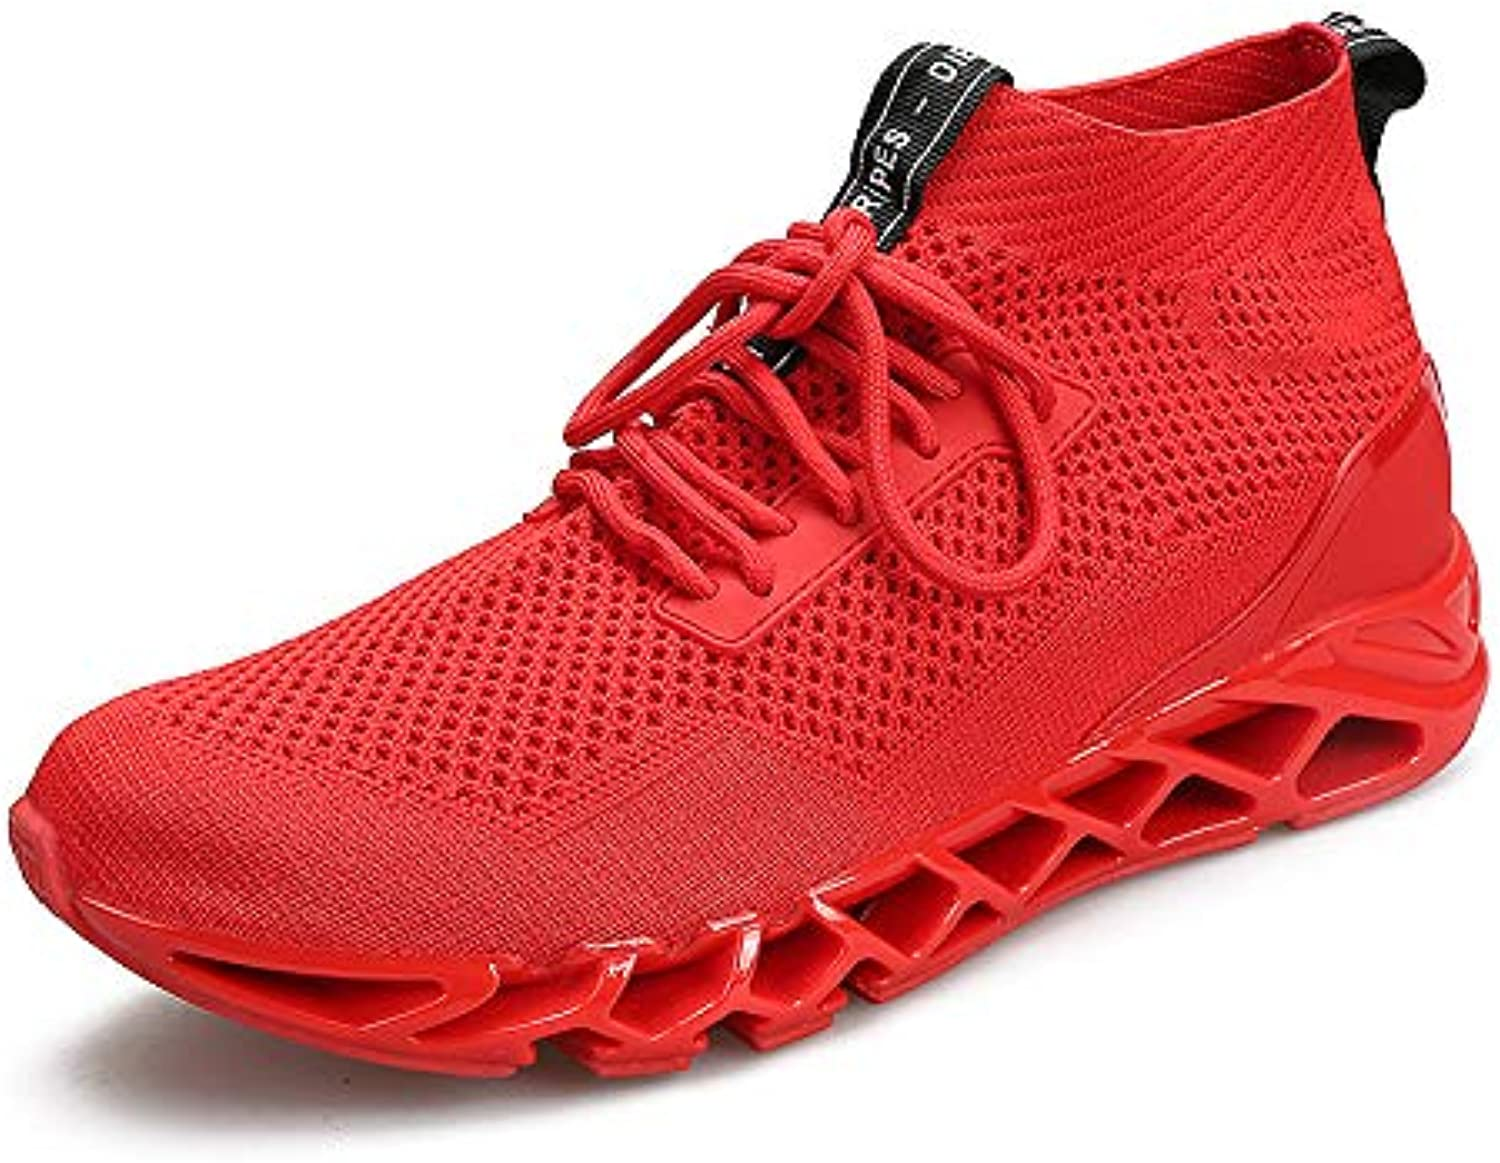 LOVDRAM Men'S shoes Men'S Sports shoes Shock Absorption Wear Outdoor Large Size High To Help Running shoes